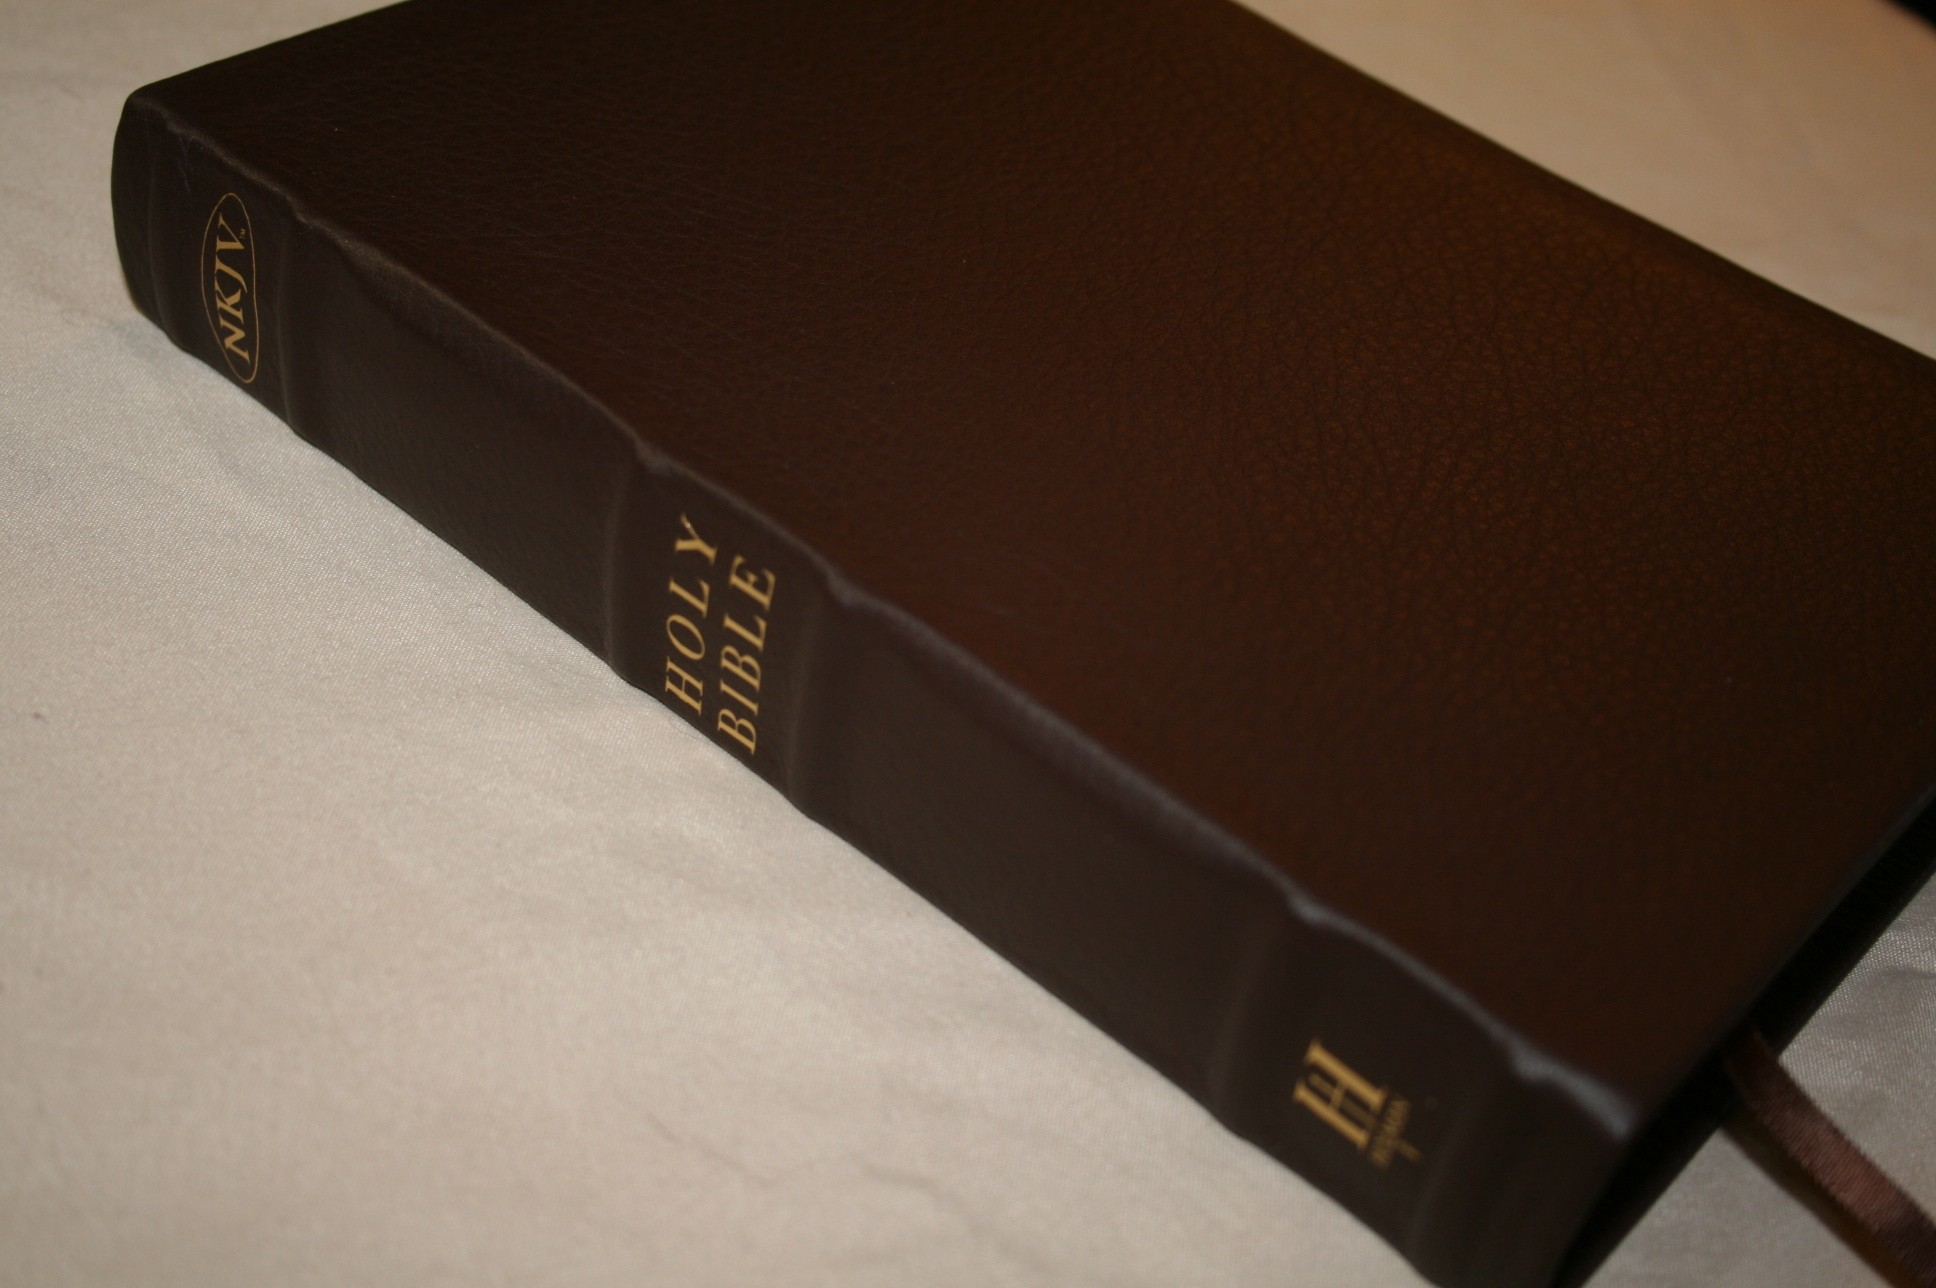 ESV Study Bible - allbibles.com